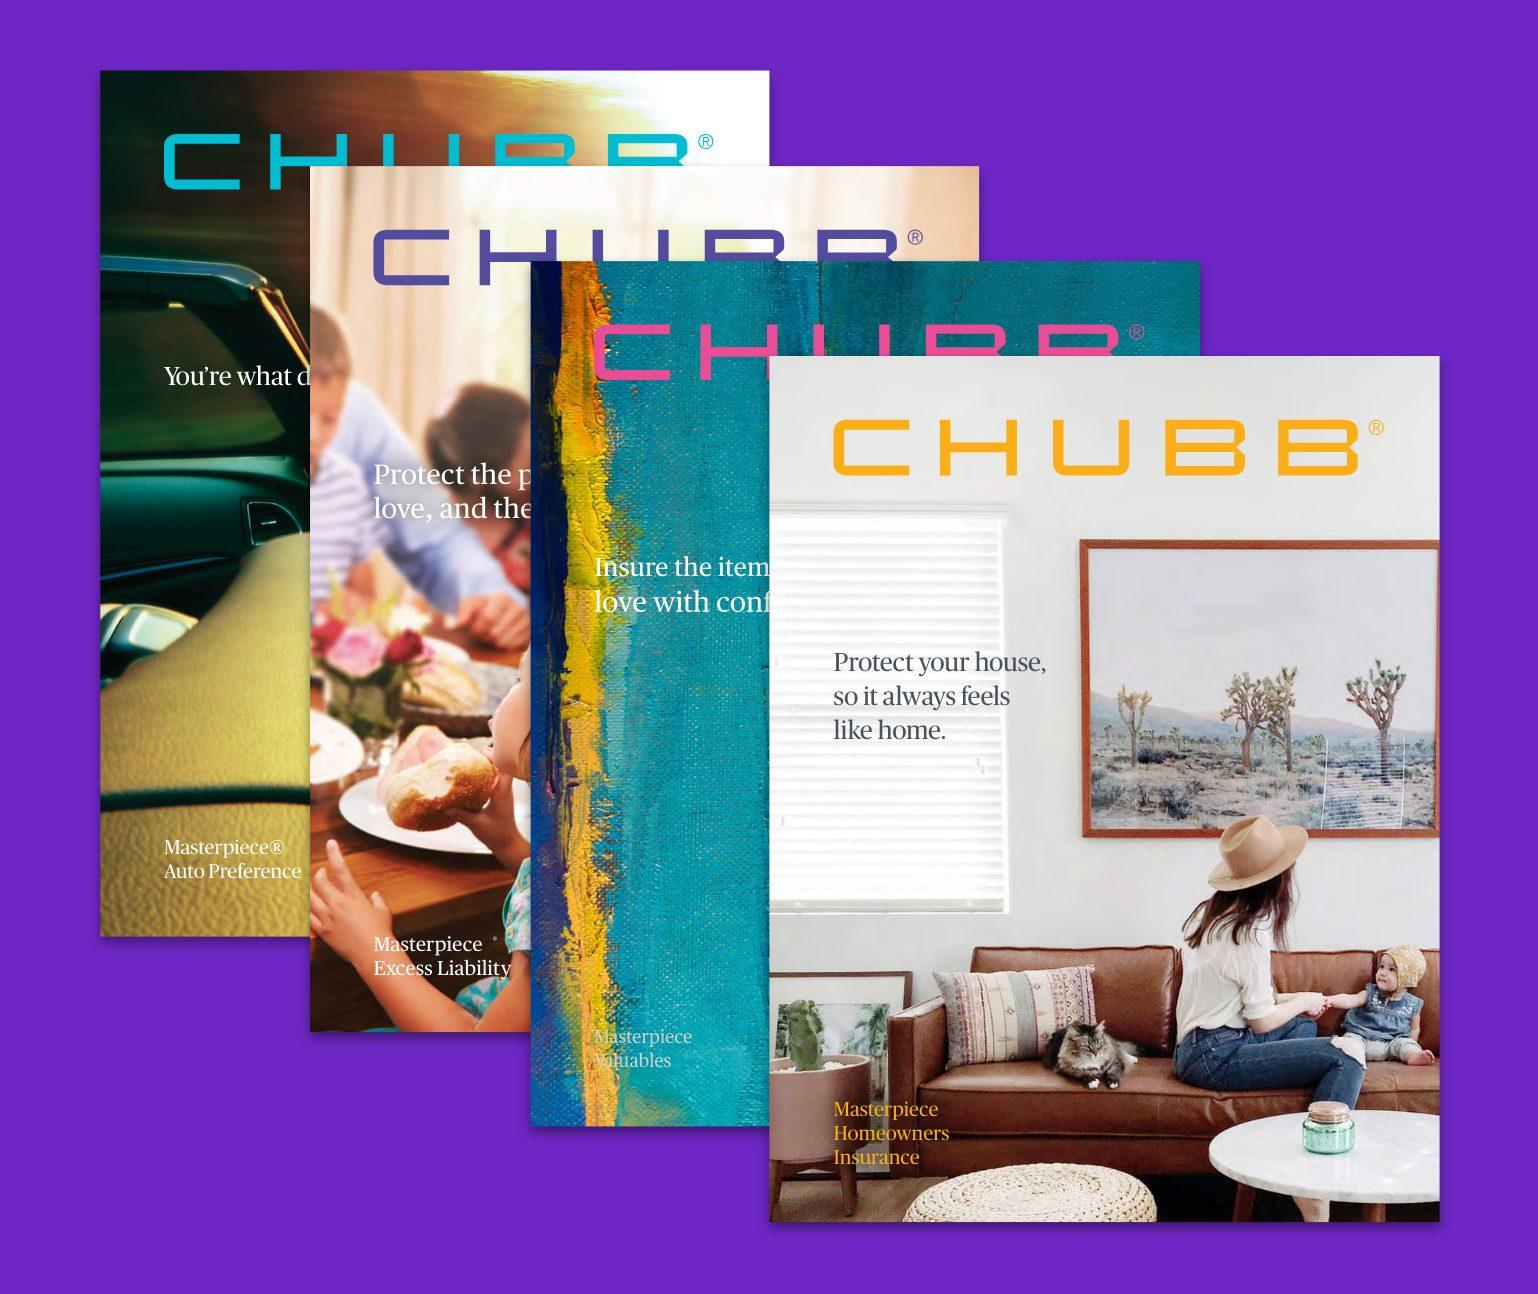 Four brochure cover designs overlapping on a purple background